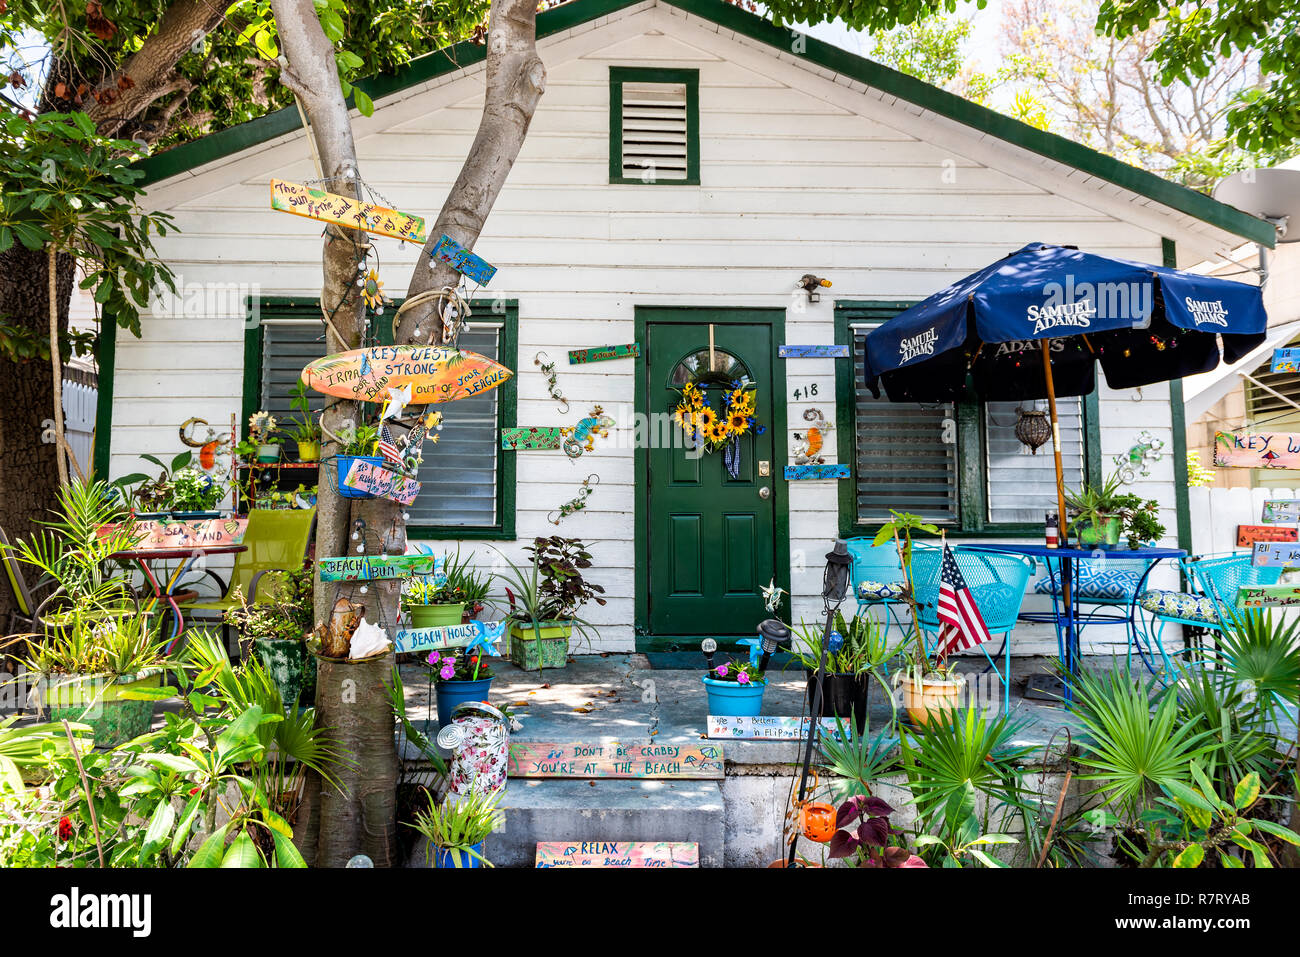 Key West, USA - May 1, 2018: Architecture of house in Florida city island on travel, sunny day, many decorations, local colorful design Stock Photo